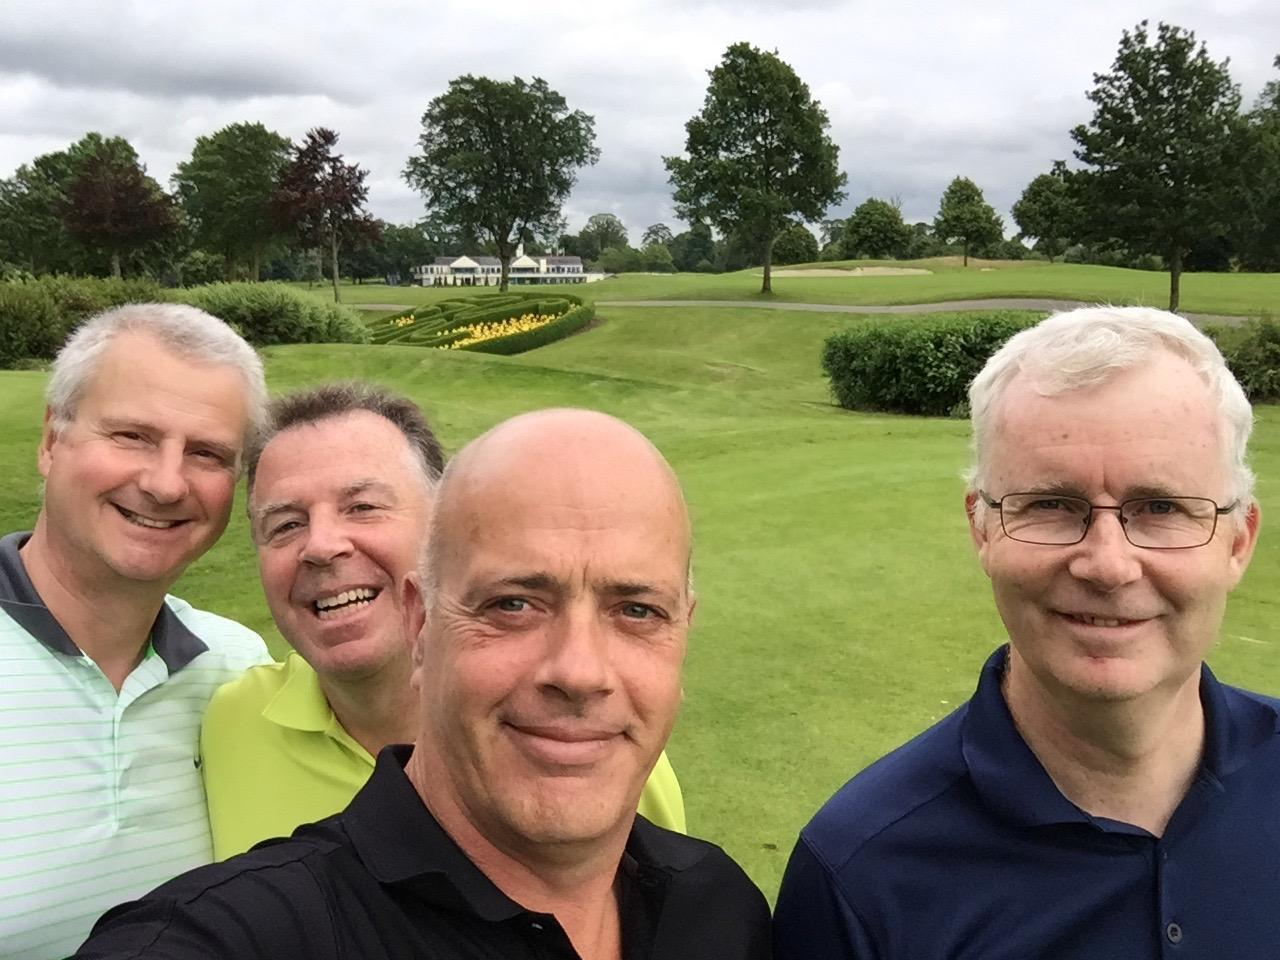 Eoin (second from right) enjoying golf with the Jubilee group (their regular fourball match).